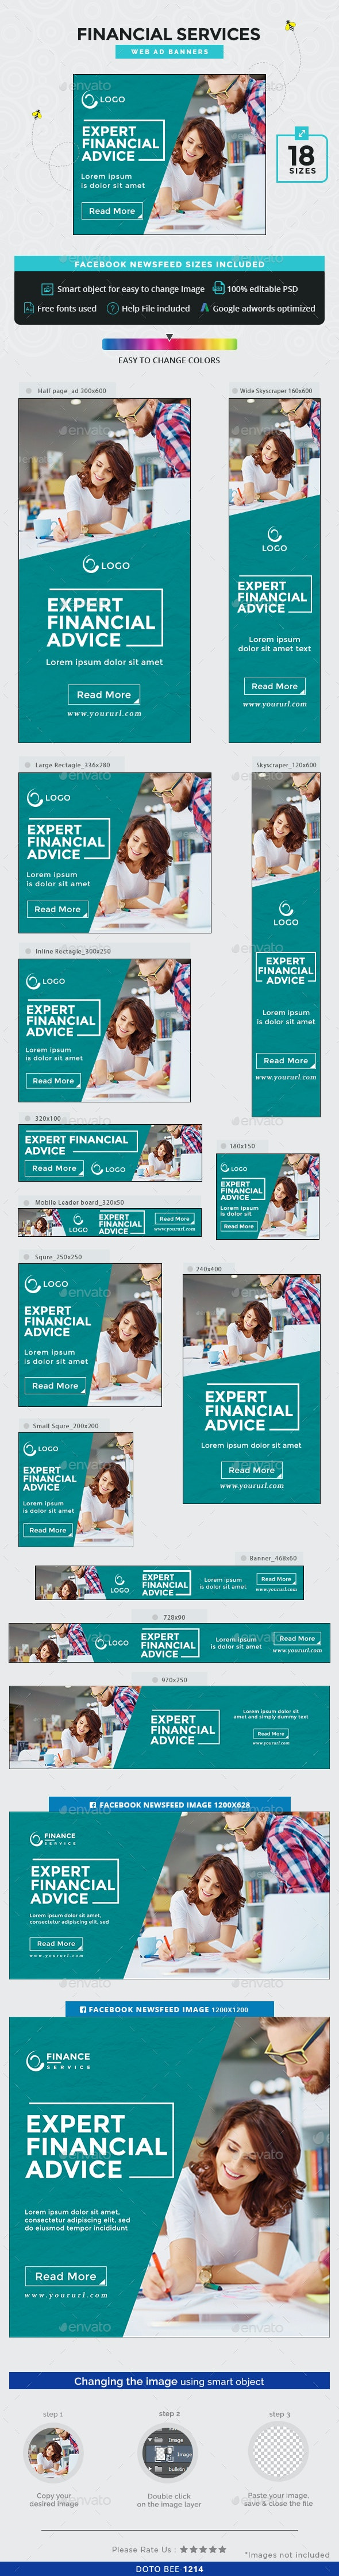 Financial Services Banners - Banners & Ads Web Elements